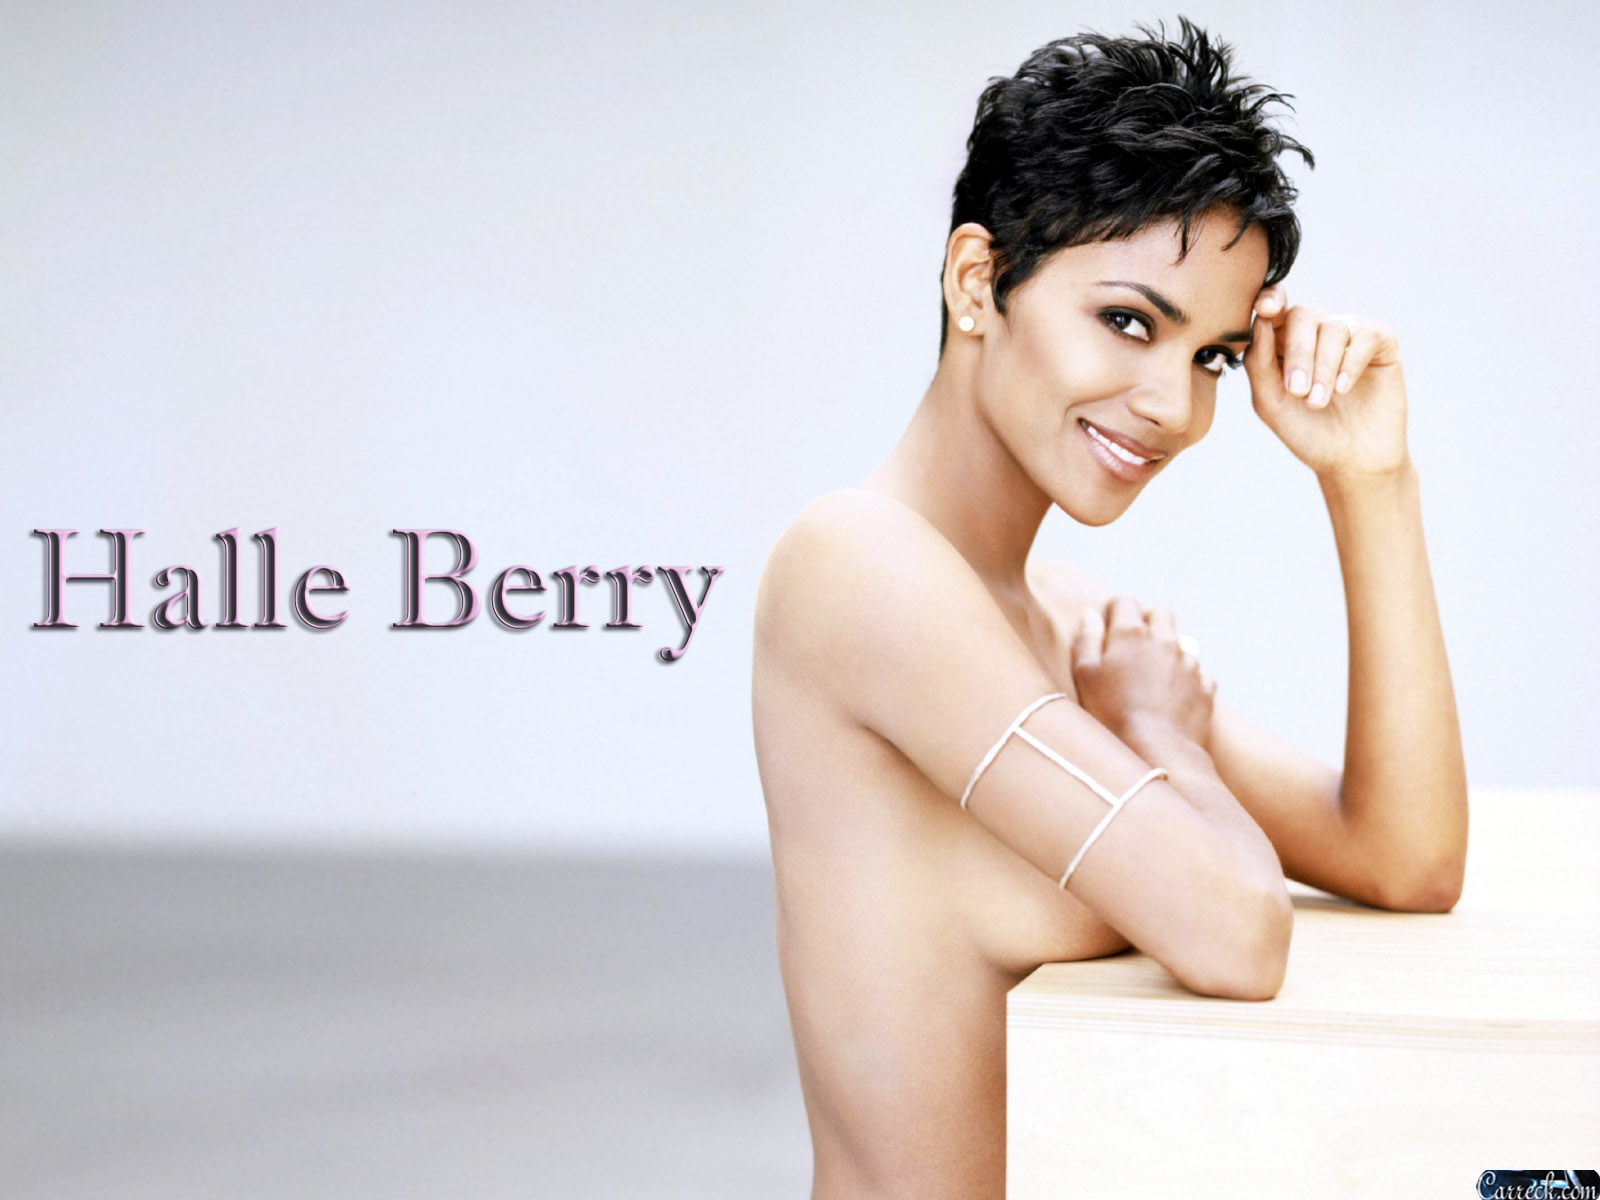 porn with halle berry pictures